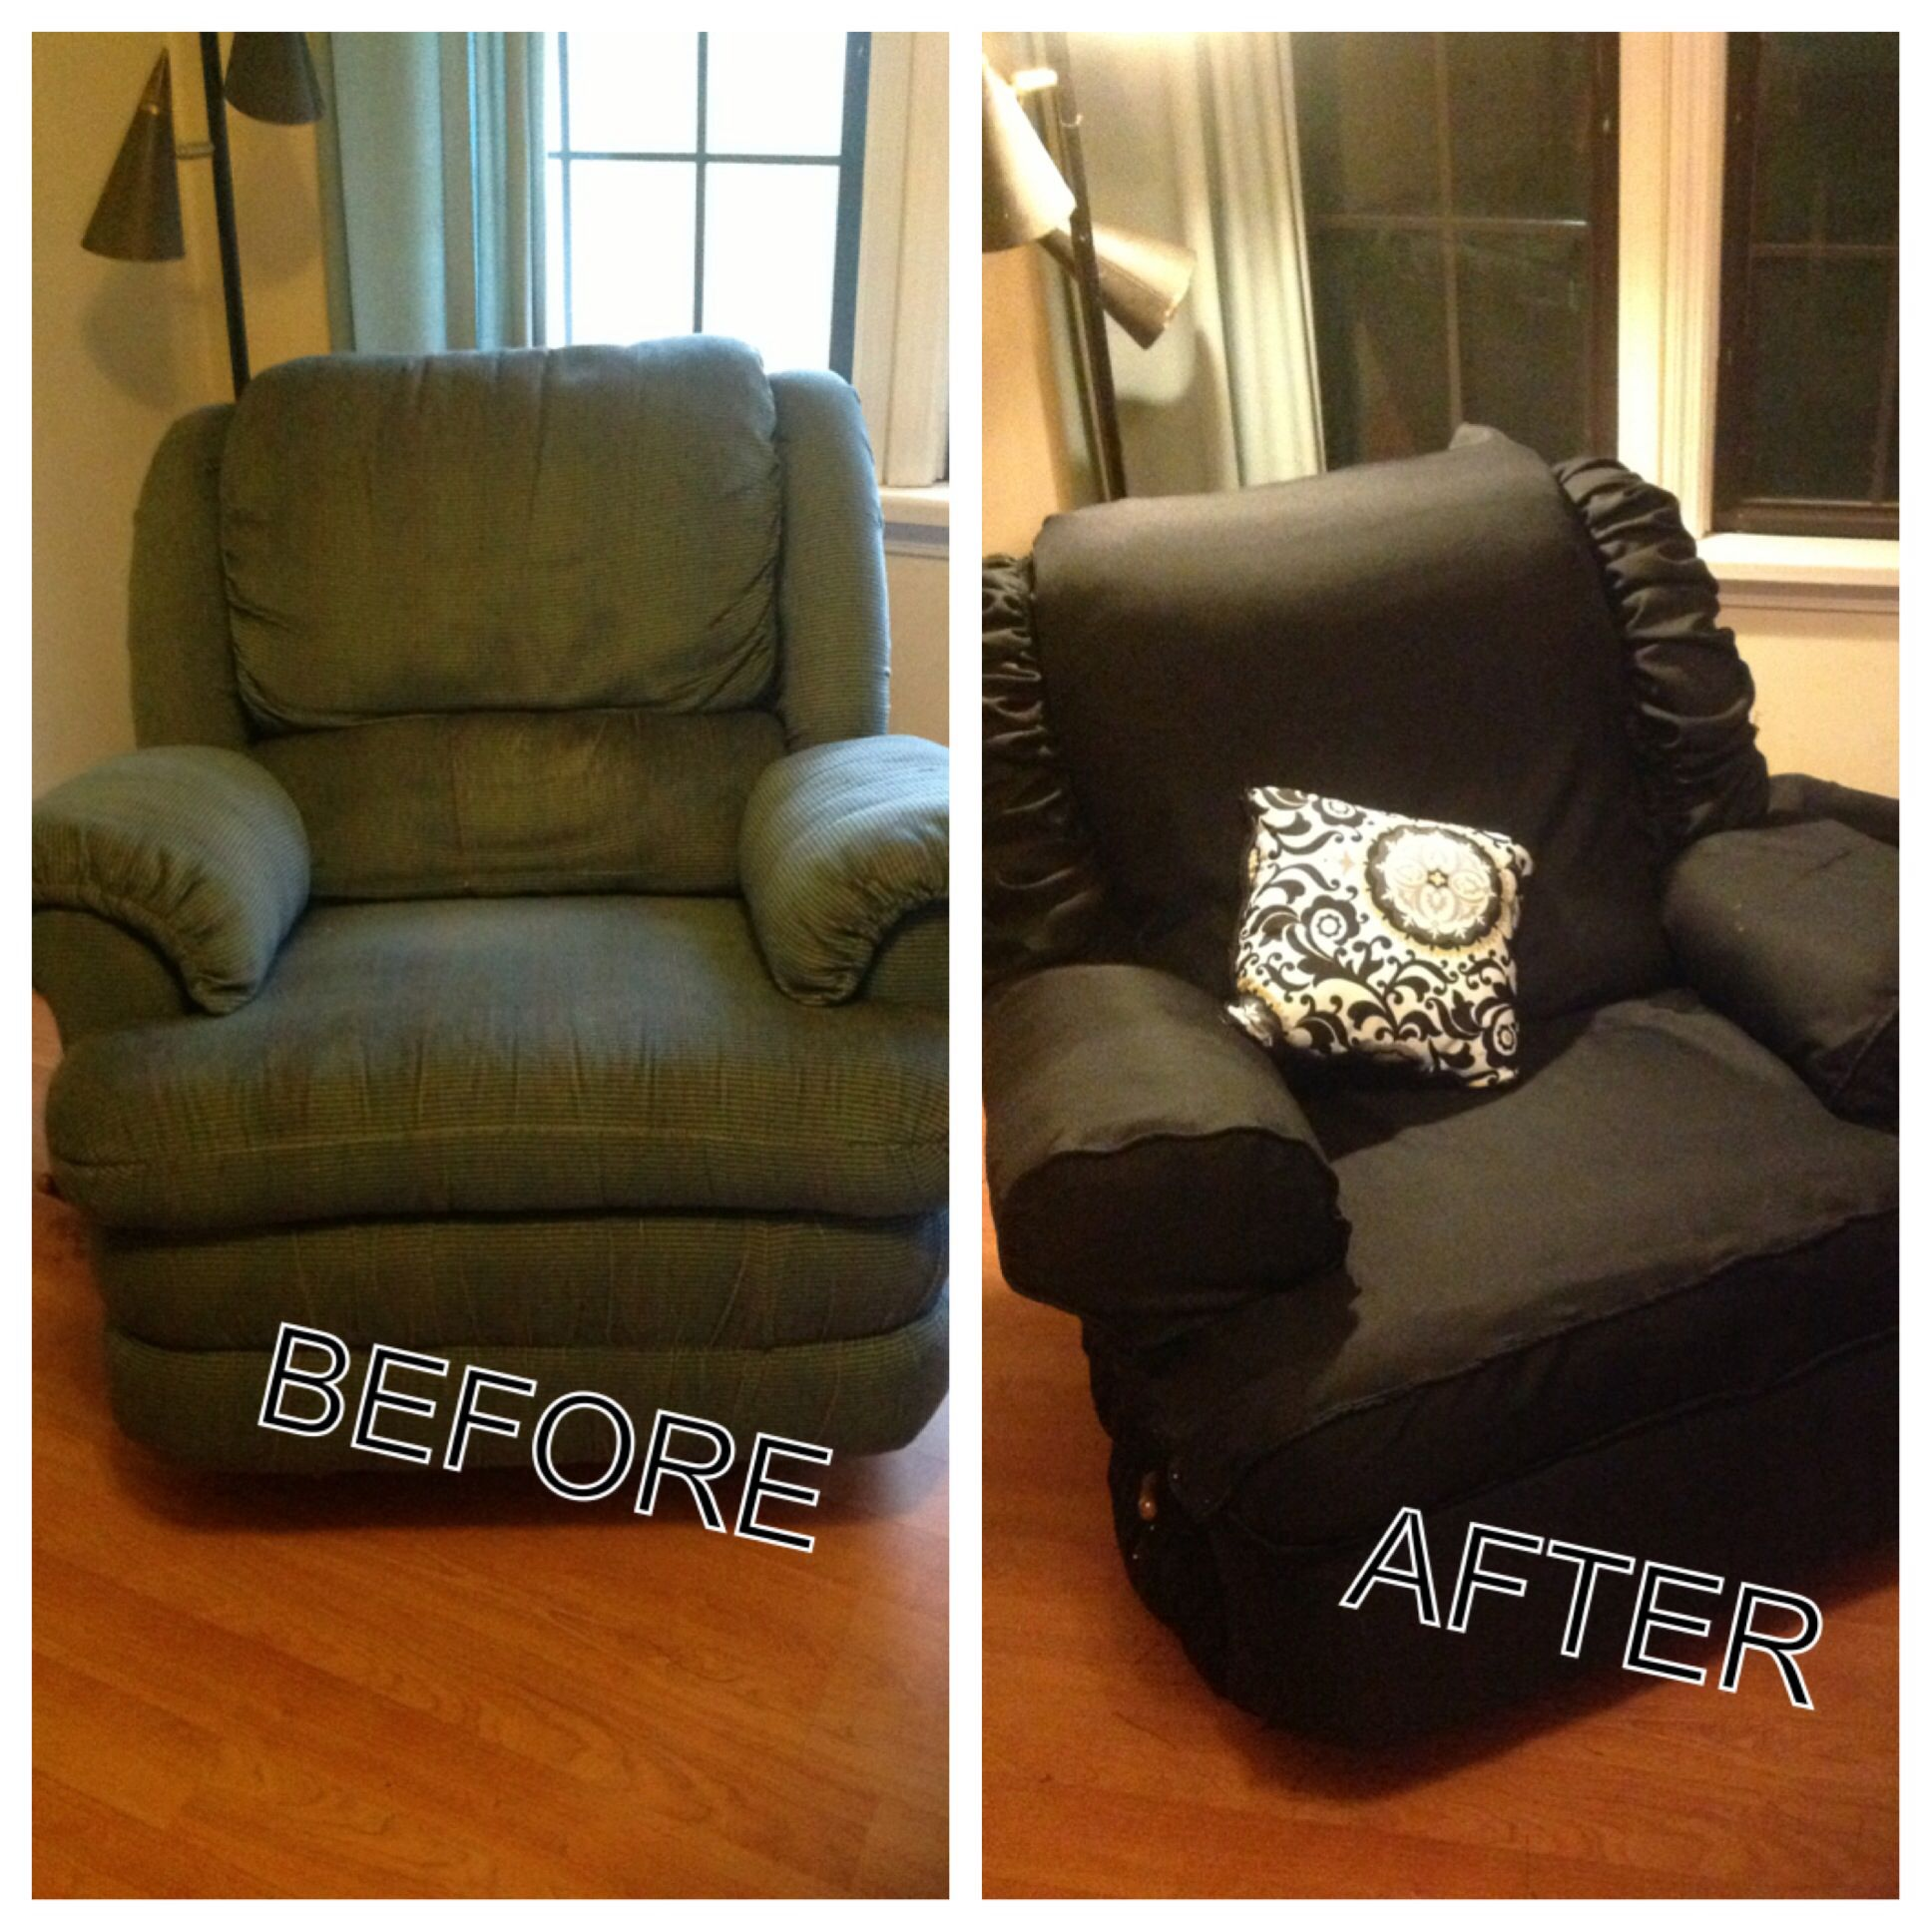 DIY Recliner Cover More & DIY Recliner Cover u2026 | Pinteresu2026 islam-shia.org